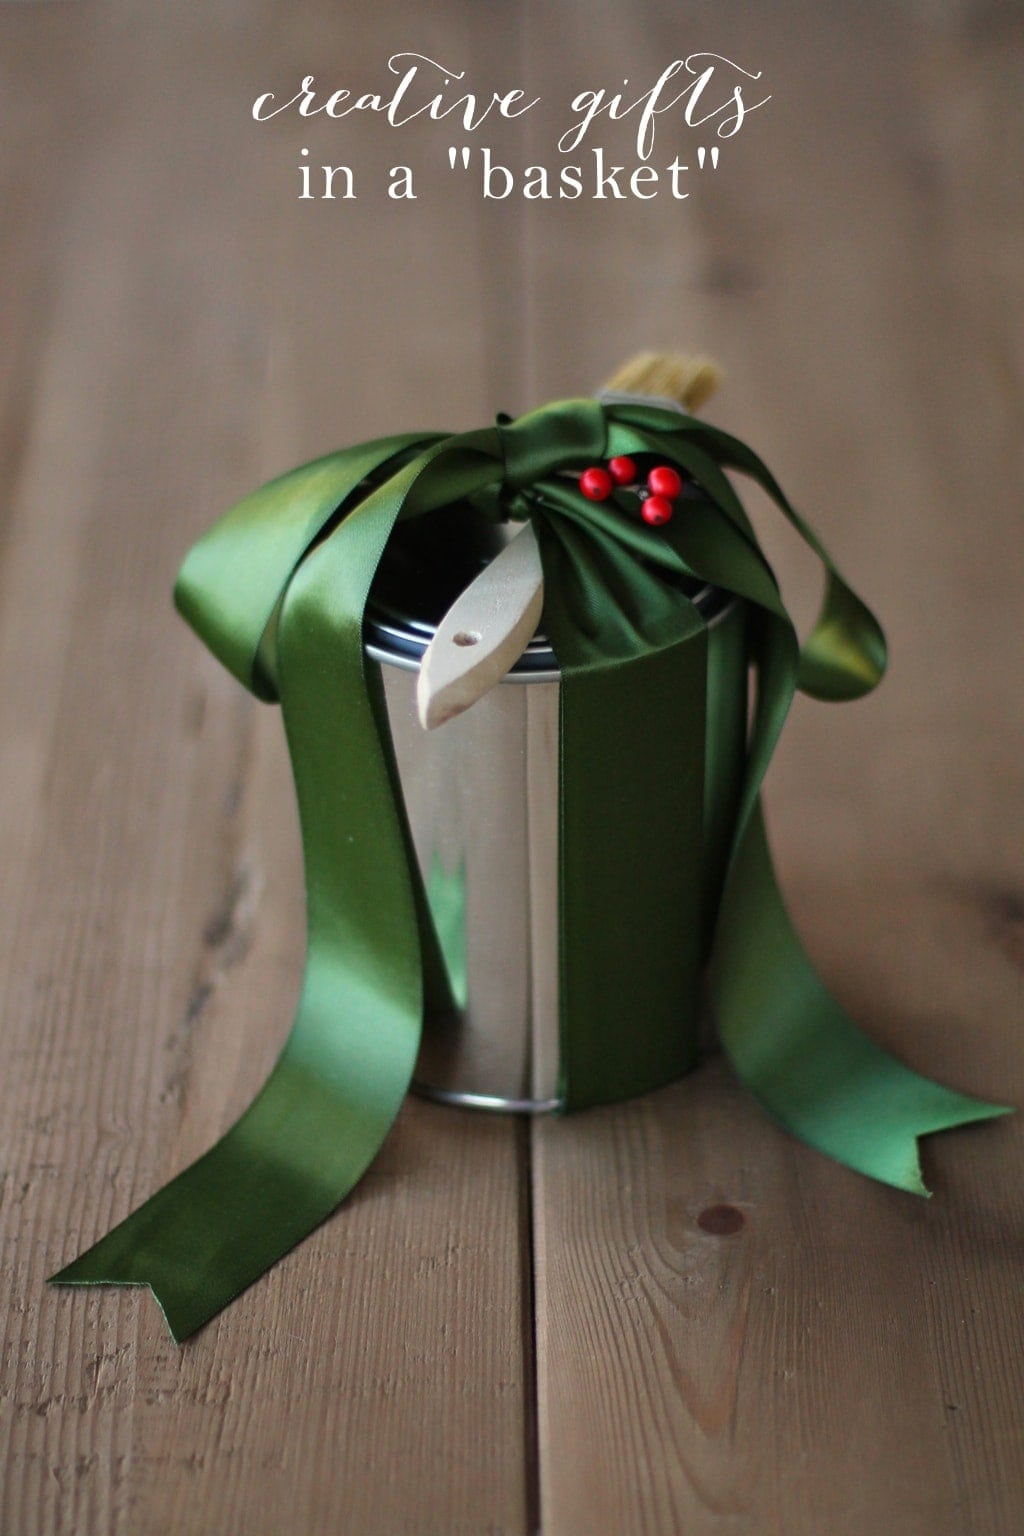 Gifts in a basket tips for gorgeous gift giving for Creative xmas gifts